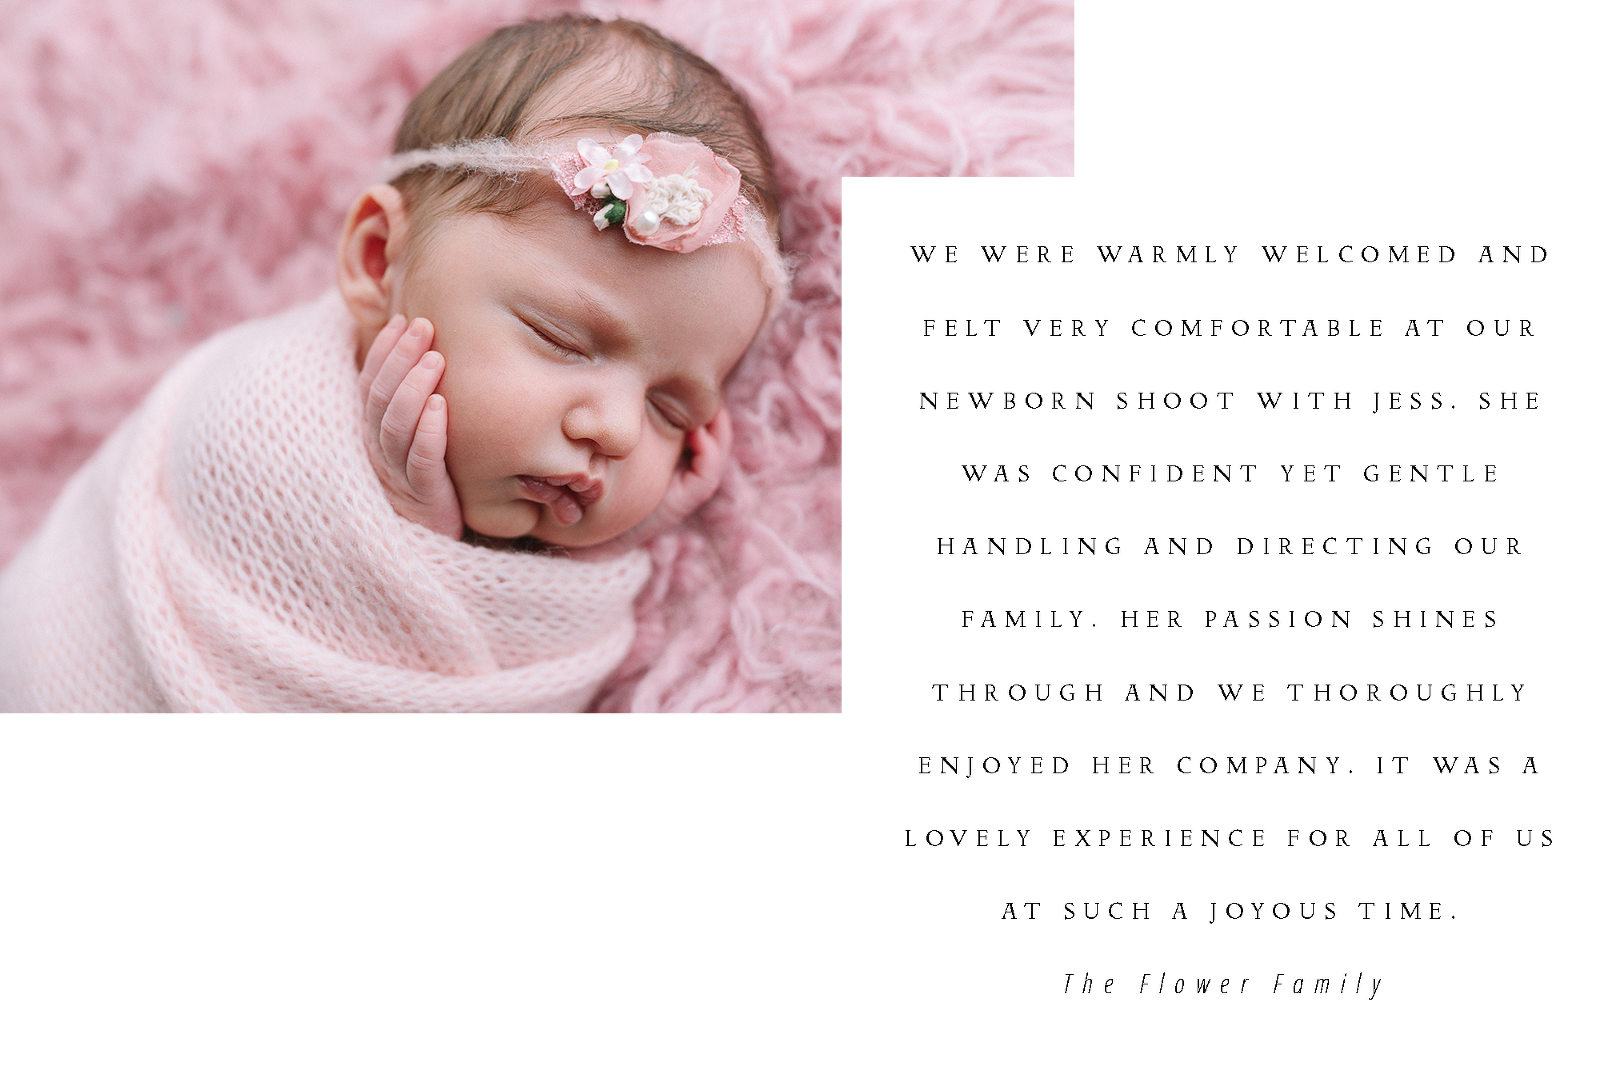 Newborn photography review